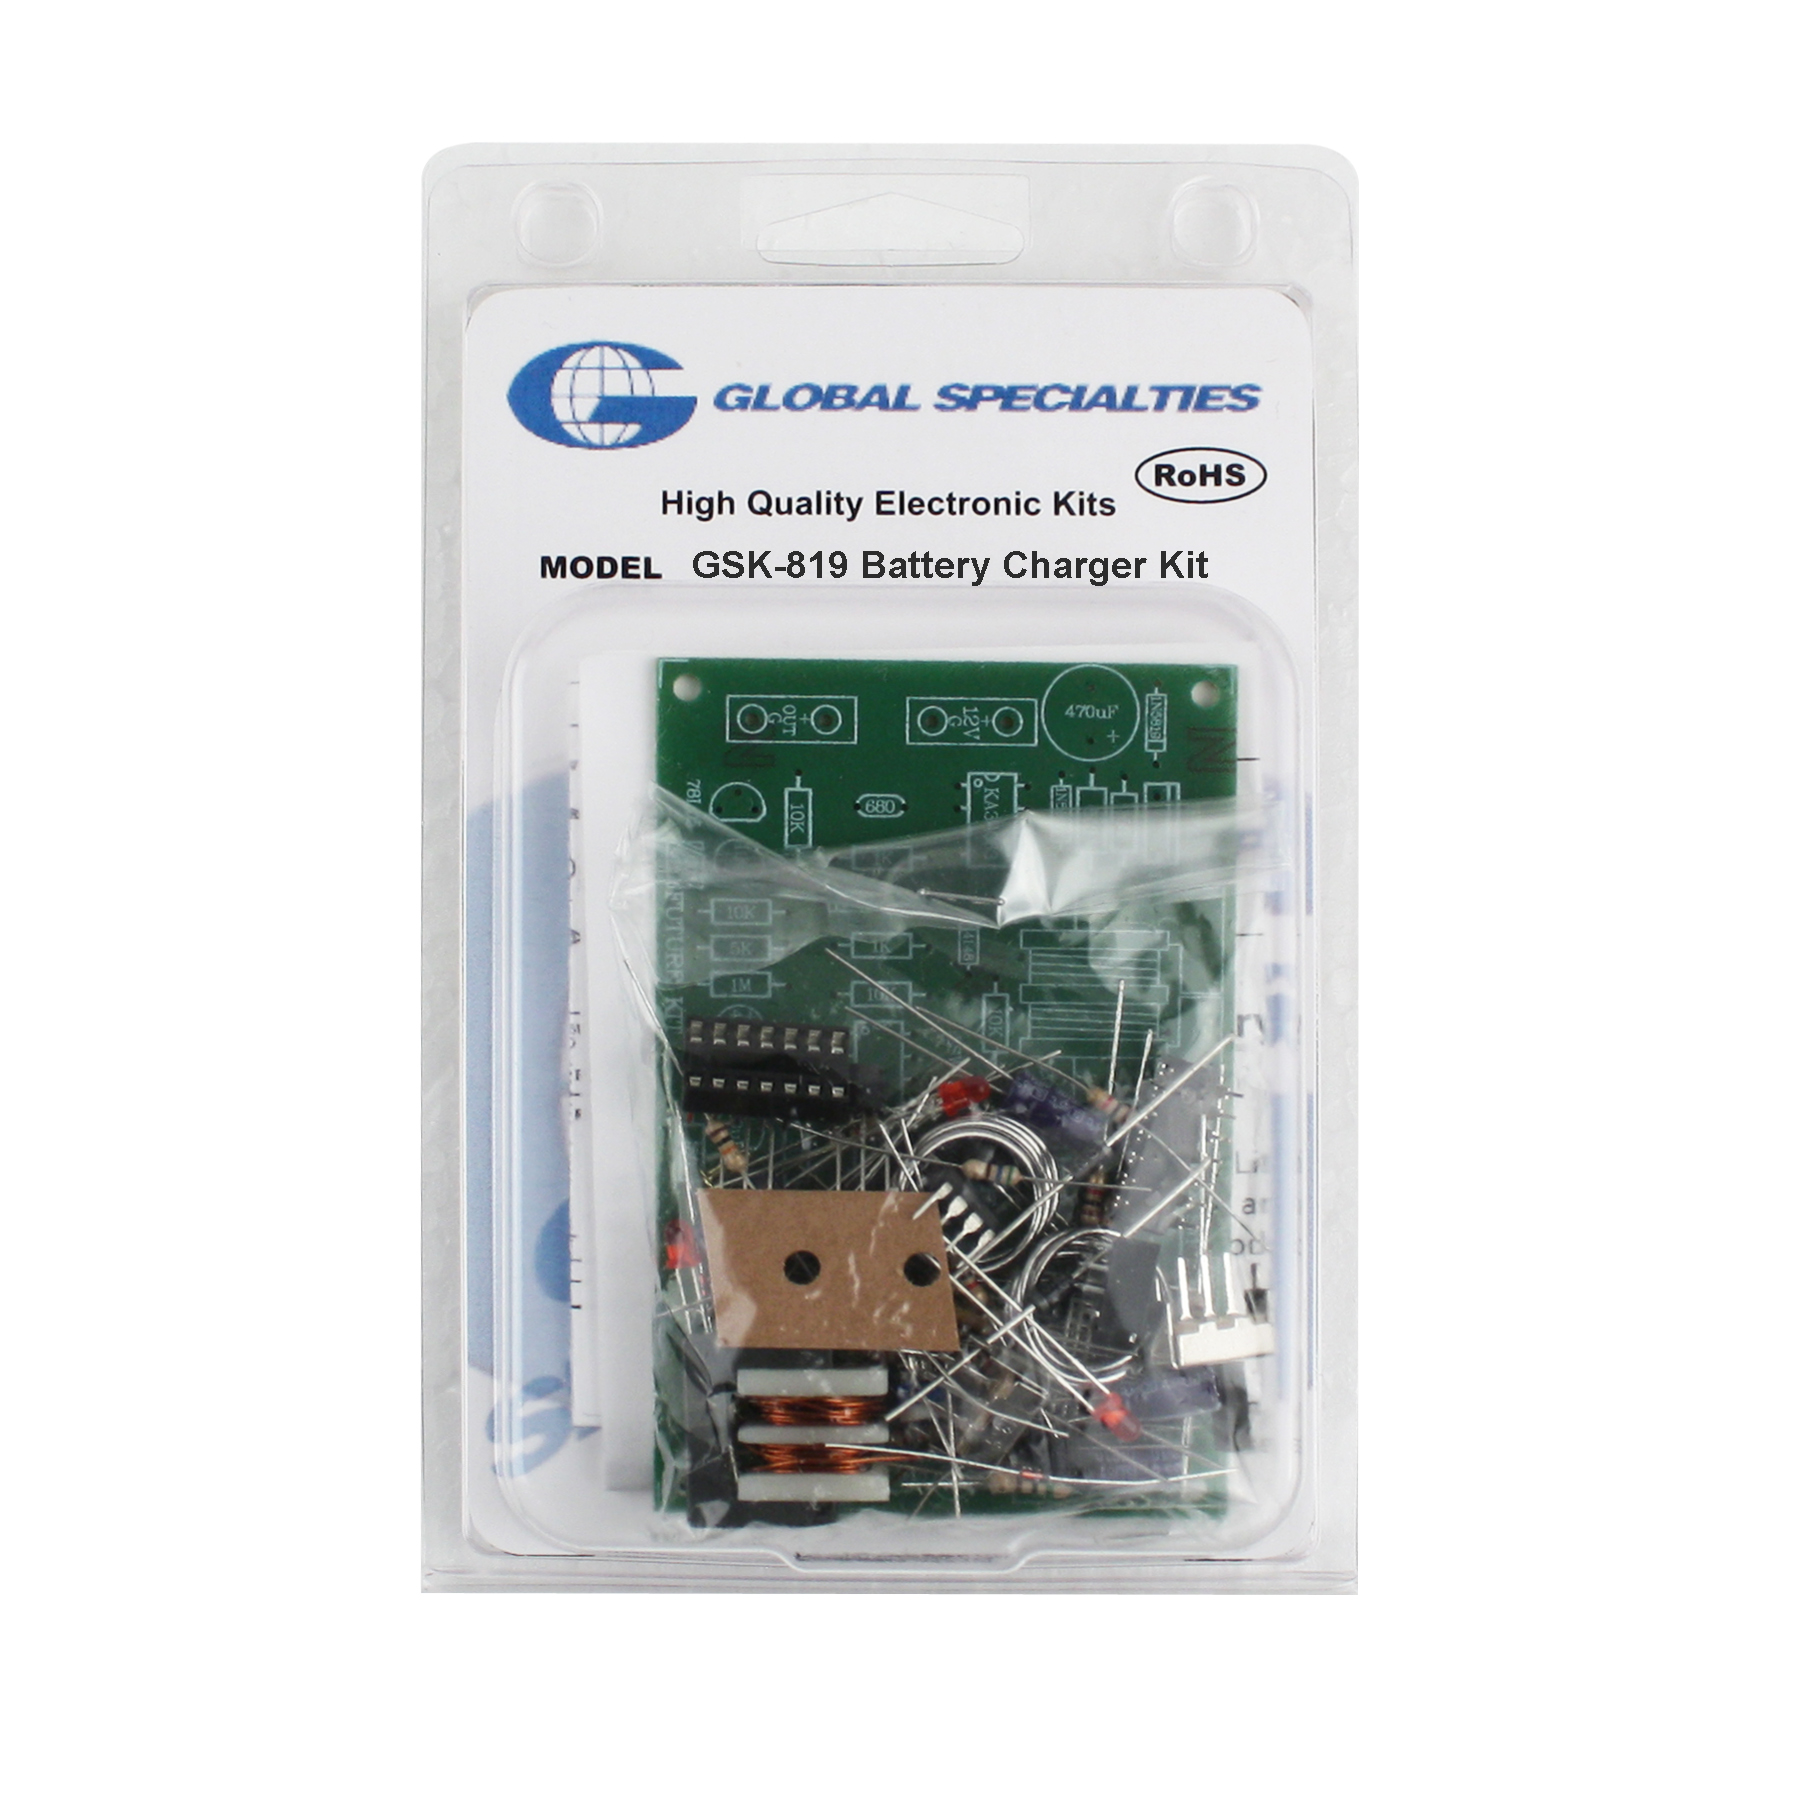 Global Specialties GSK-819 LiPo Battery Charger Kit Photo